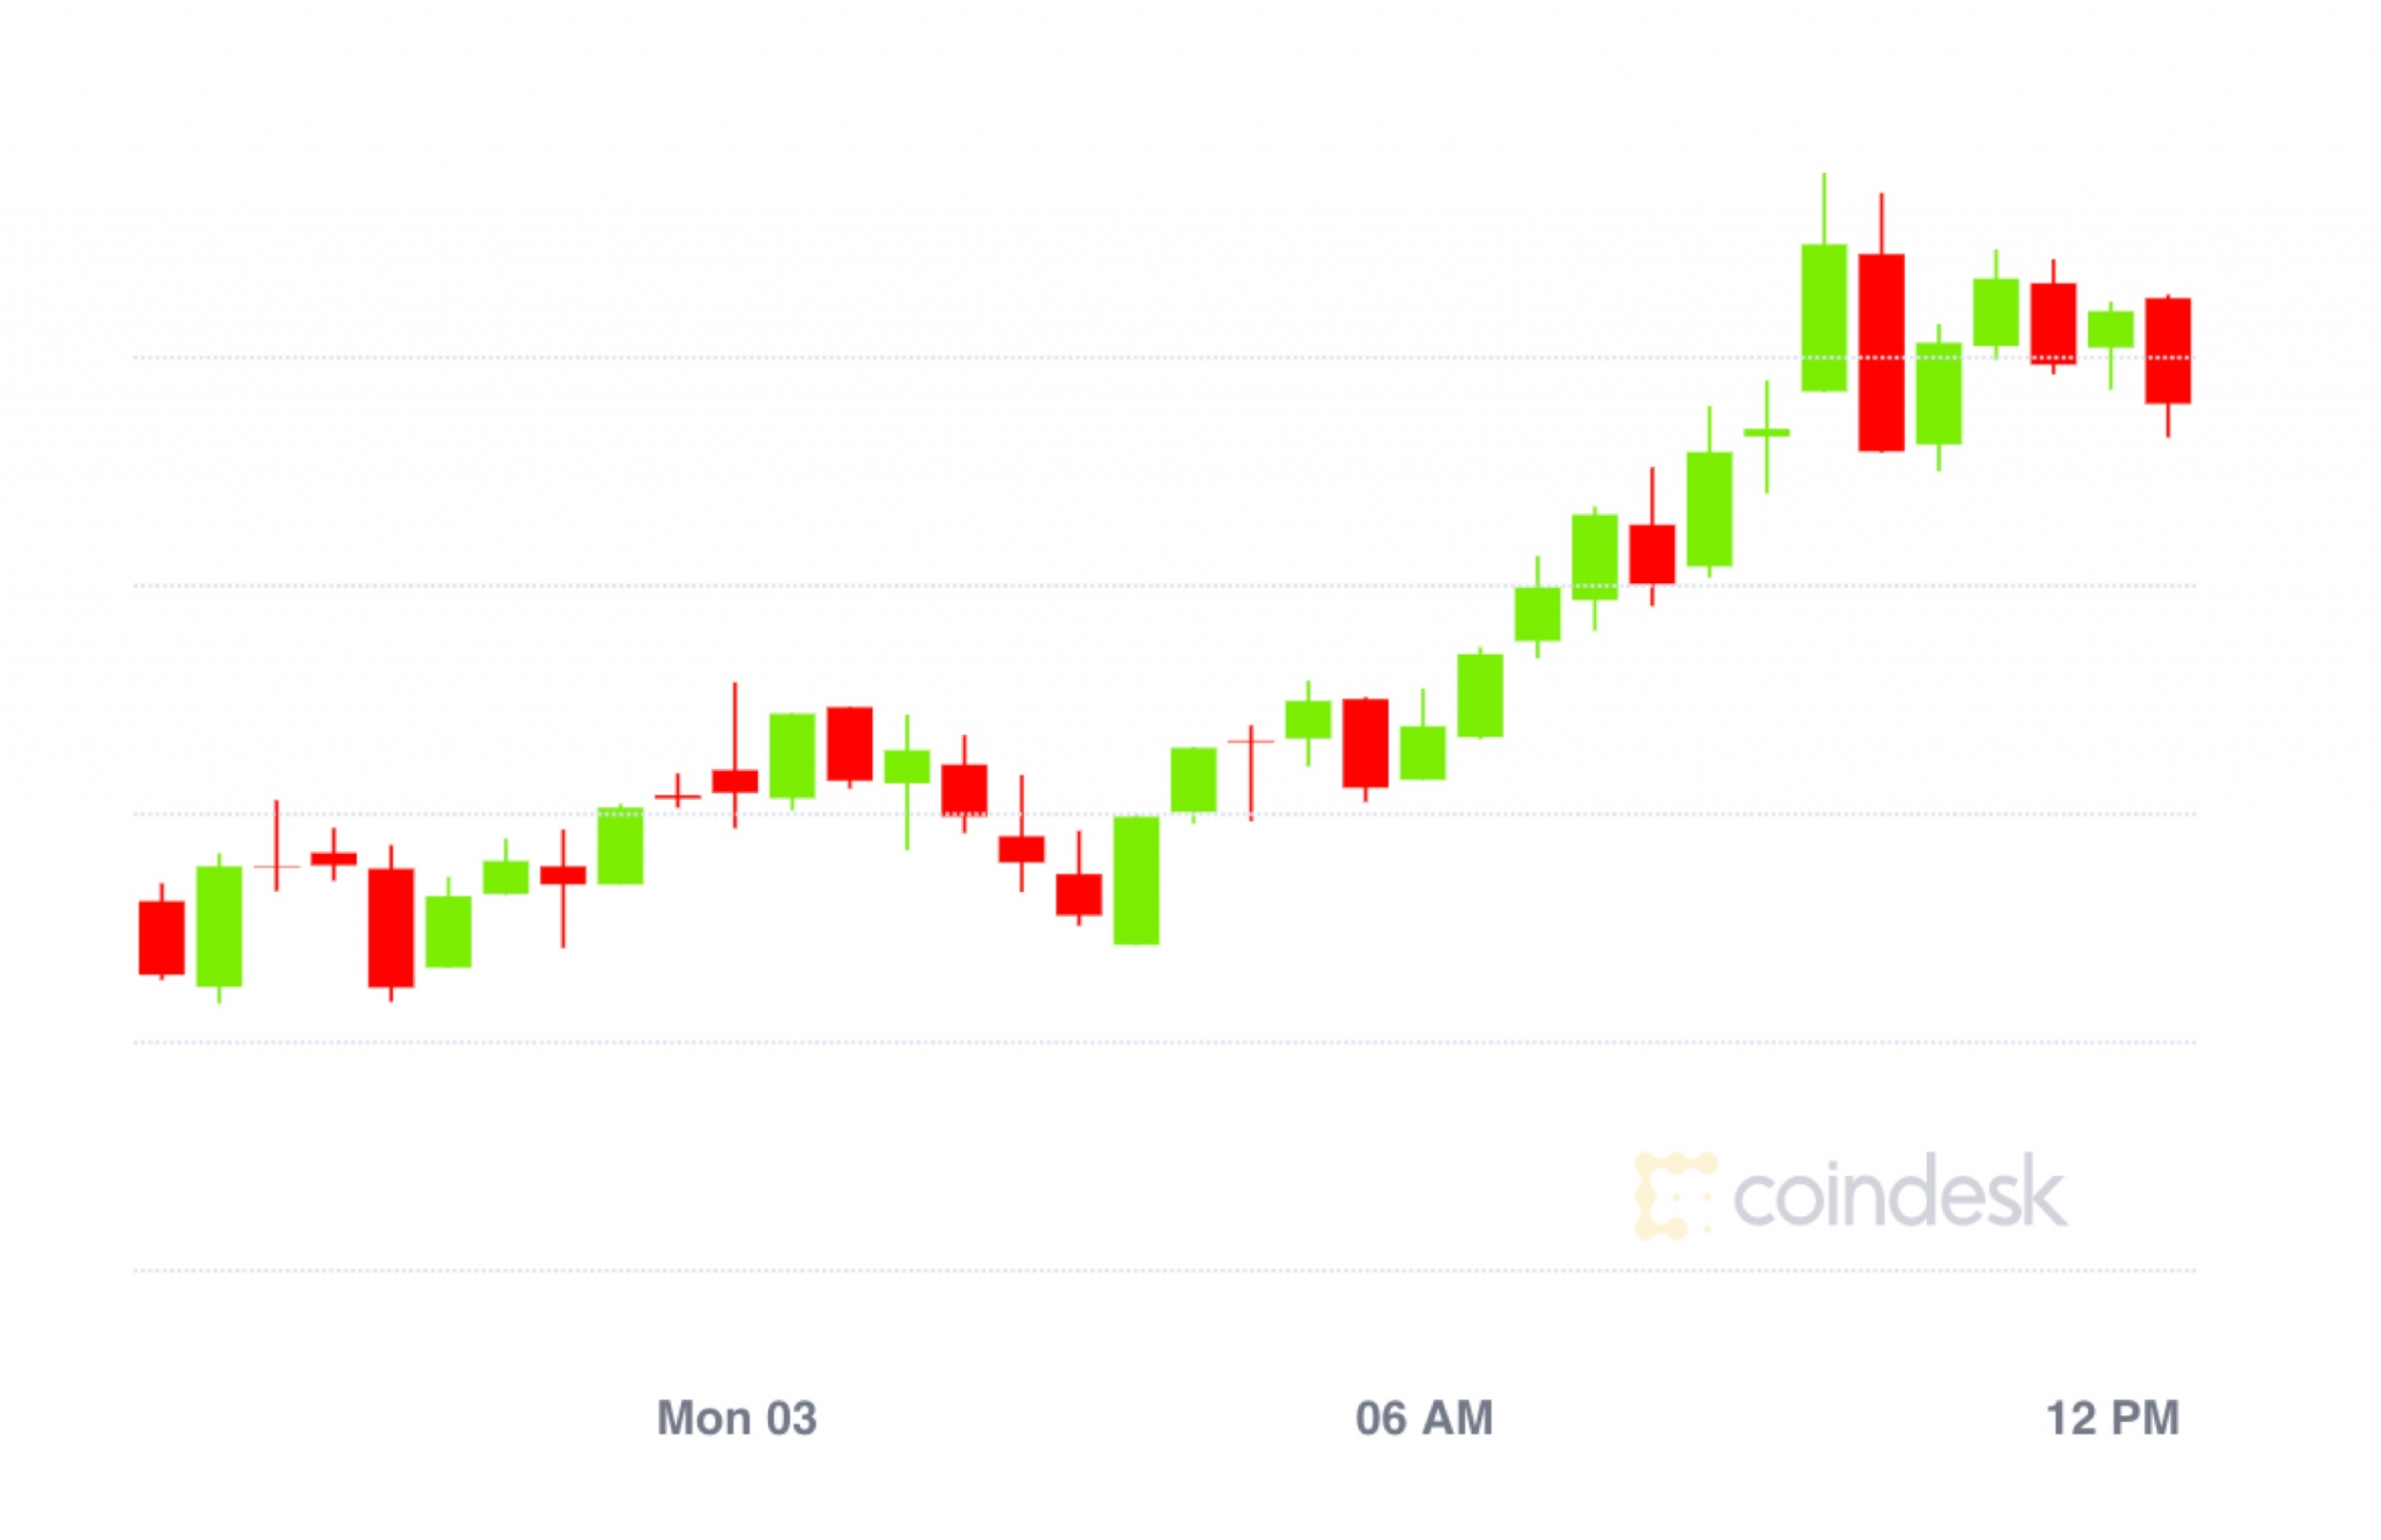 Market Wrap: Bitcoin Rebounds to $11,400 After Flash Crash as Ether Closes in on $400